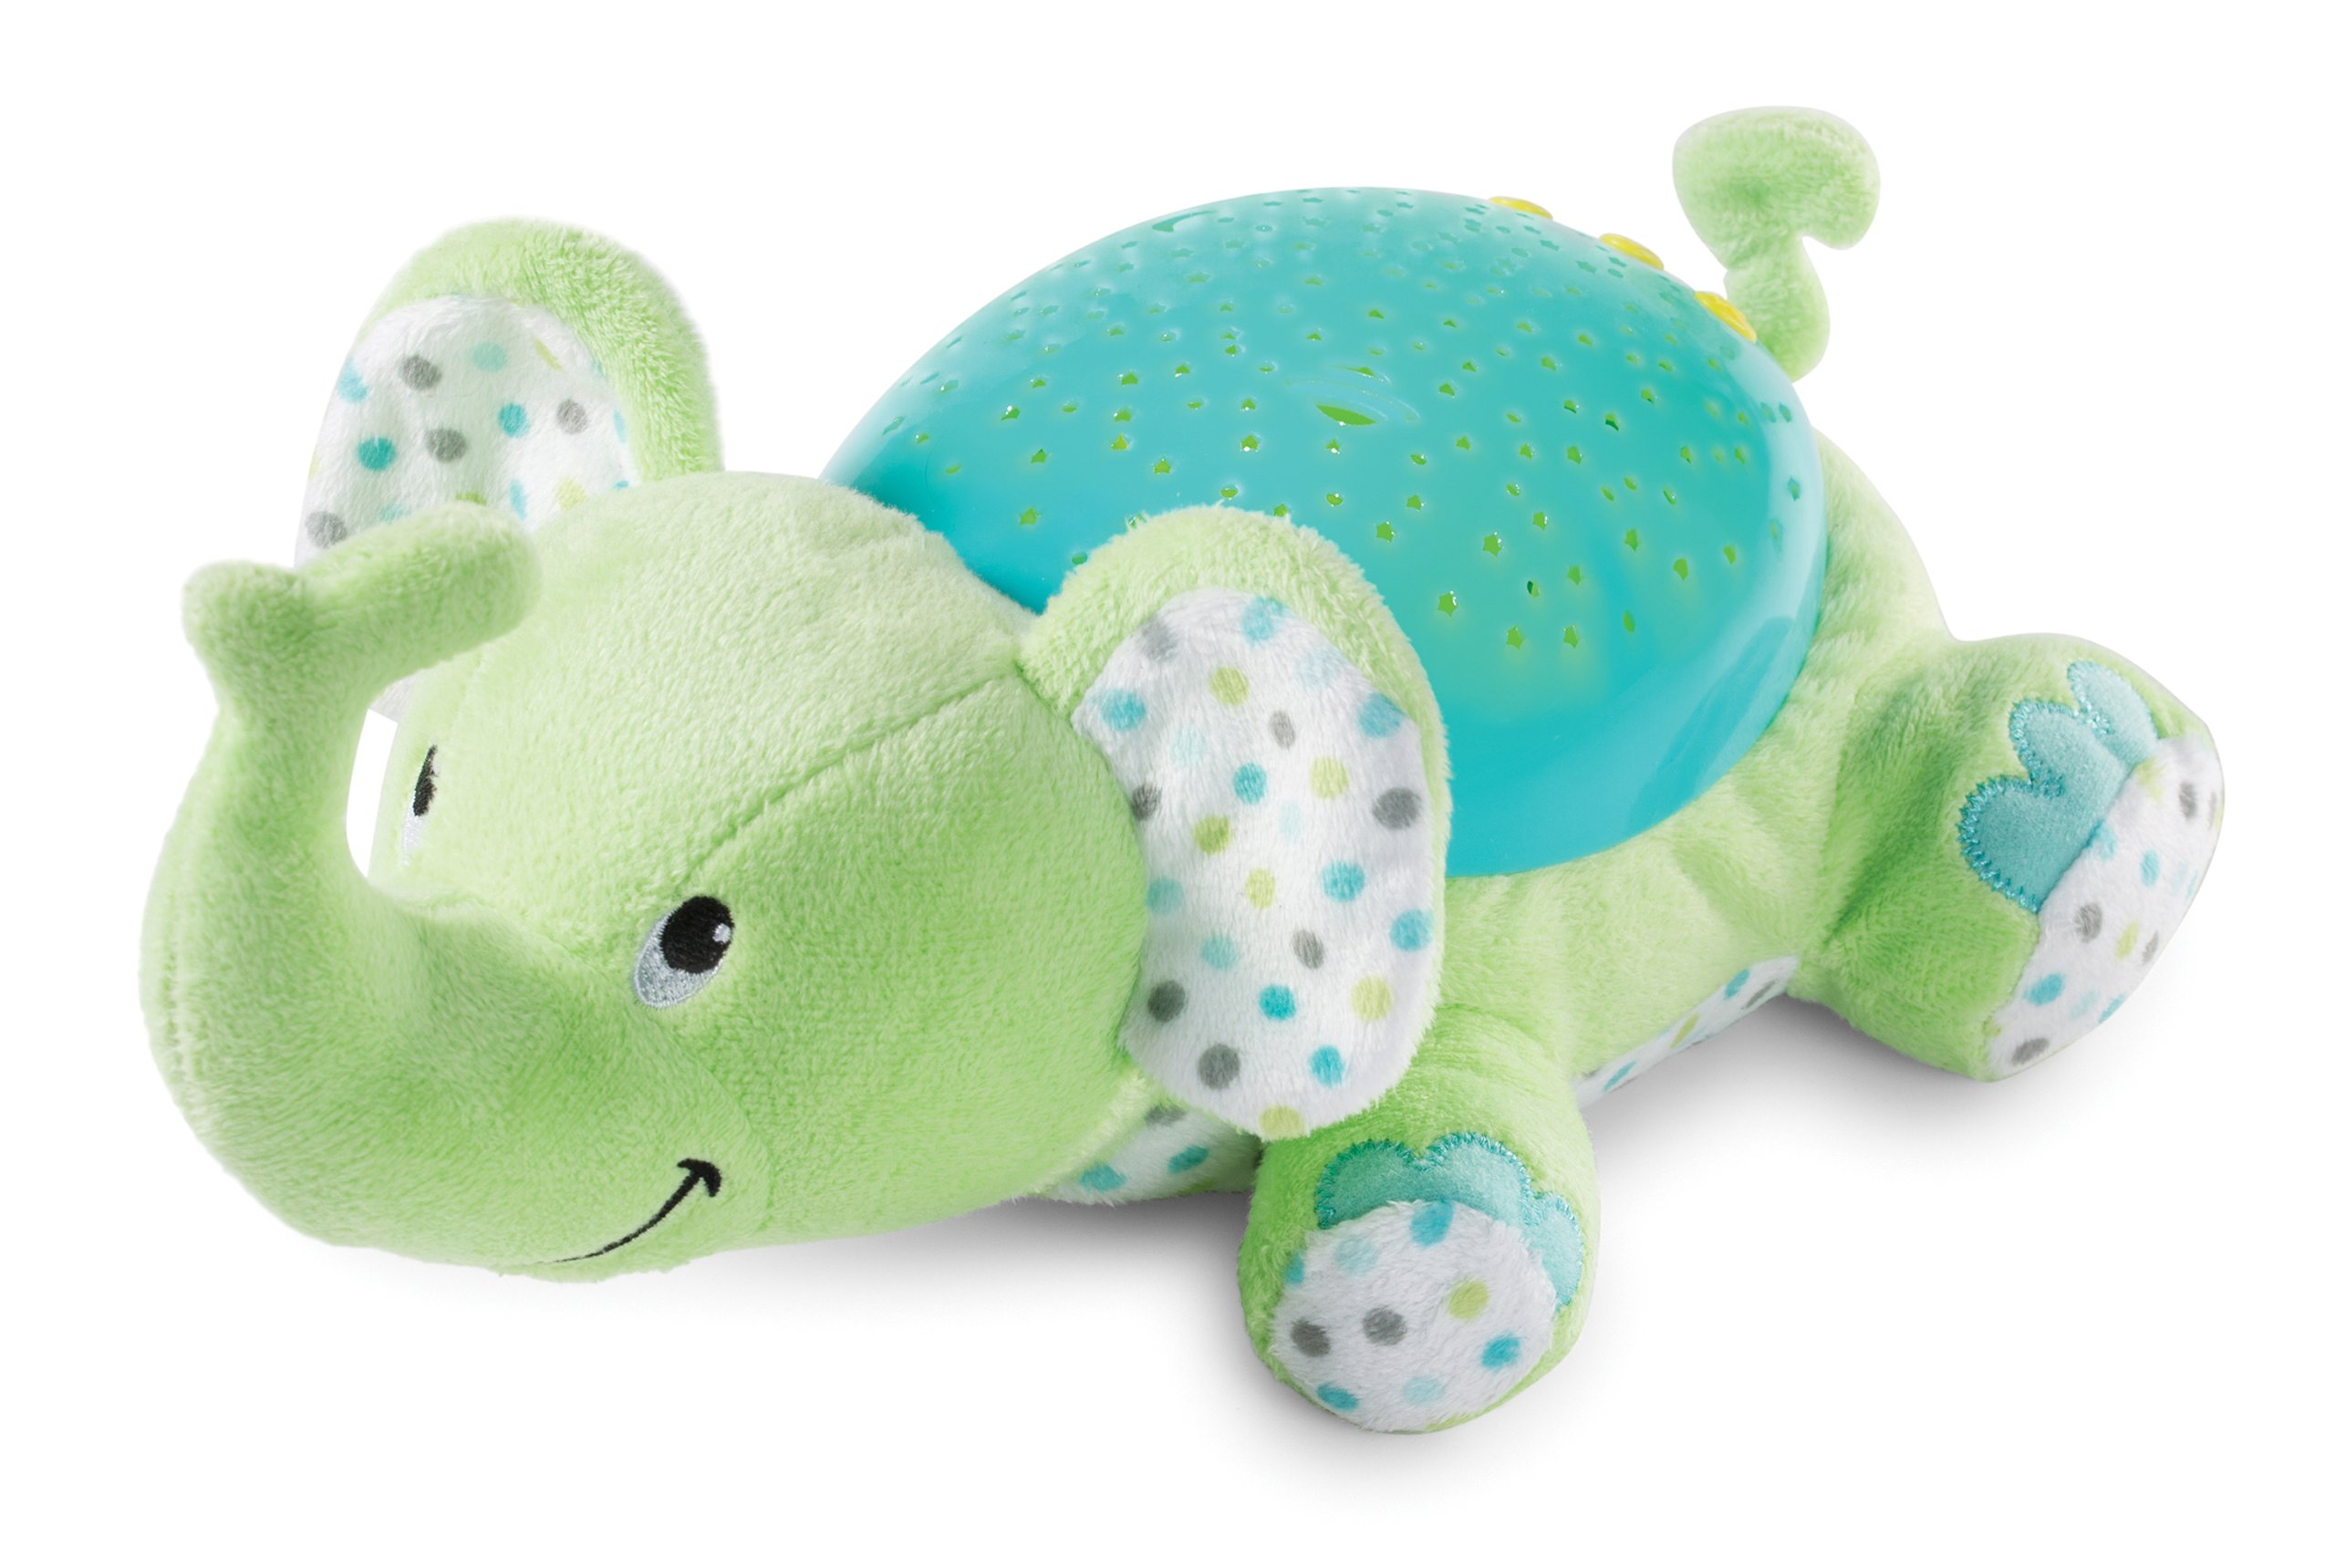 Summer Infant Slumber Buddies Projection and Melodies Soother, Eddie The Elephant